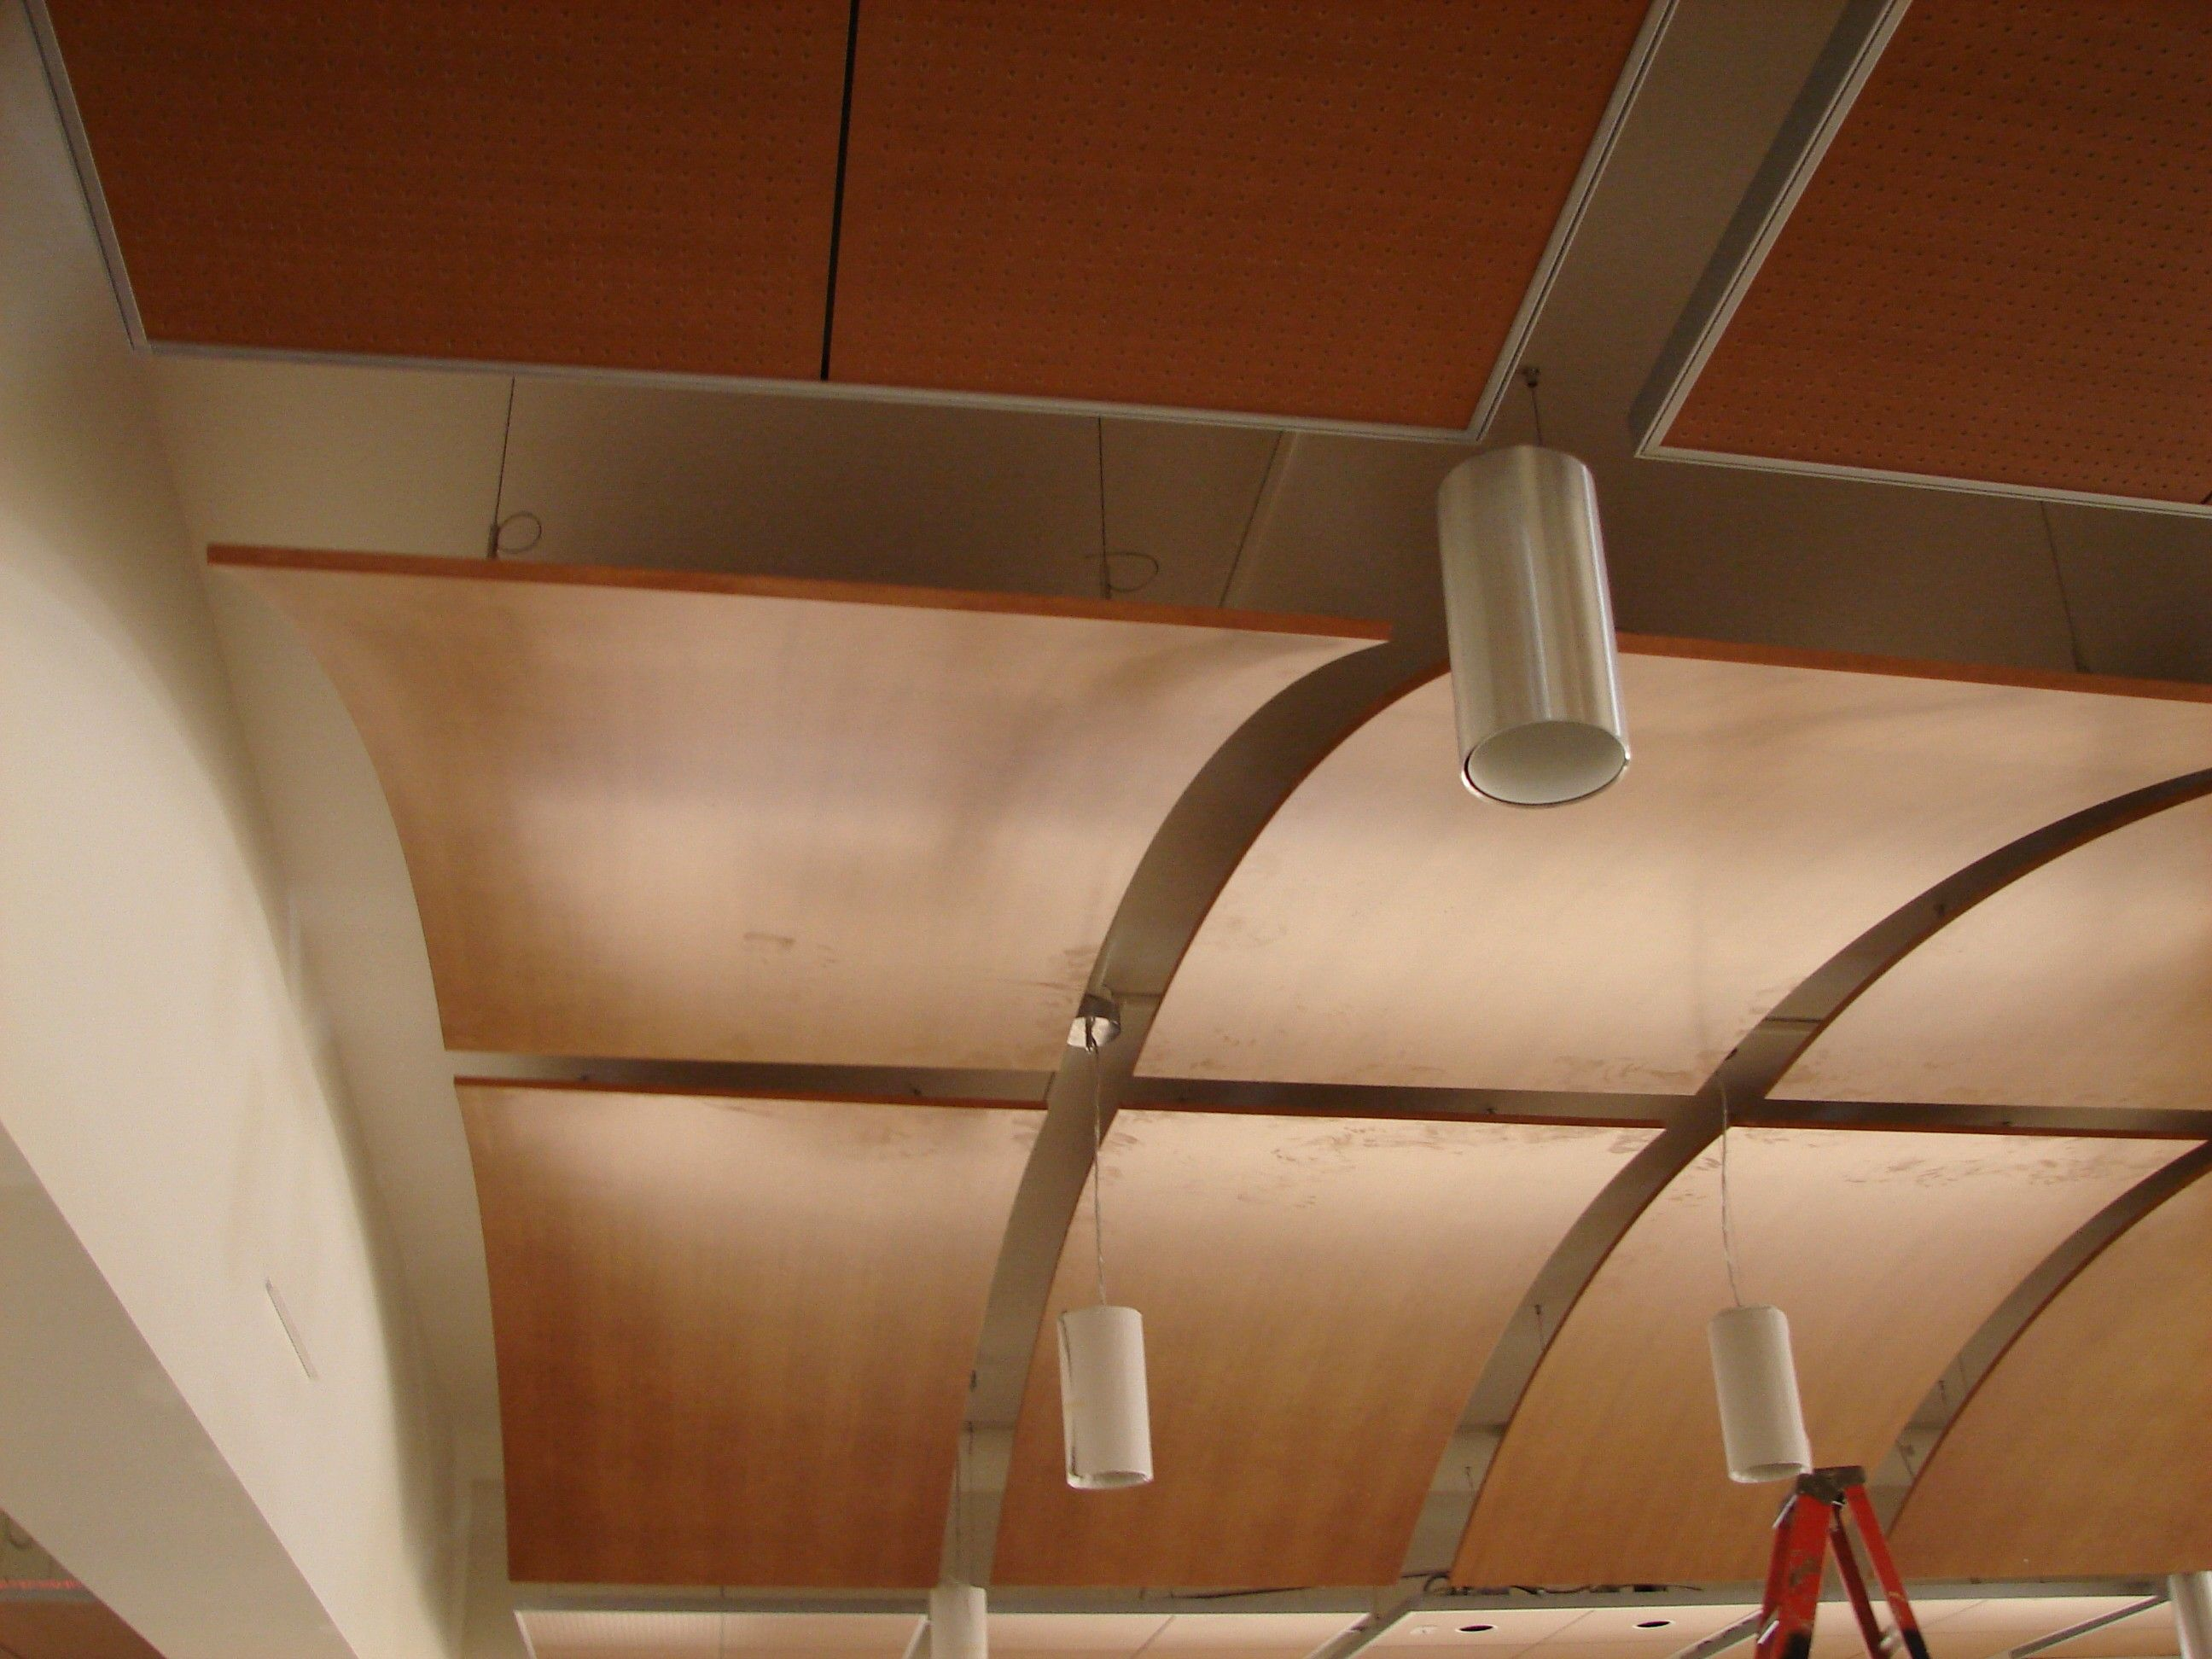 How to install ceiling tile - 17 Best Images About Ceiling Panels On Pinterest Wood Ceilings Tin Tiles And Ceiling Panels 17 Best Images About Ceiling Panels On Pinterest Wood Ceilings